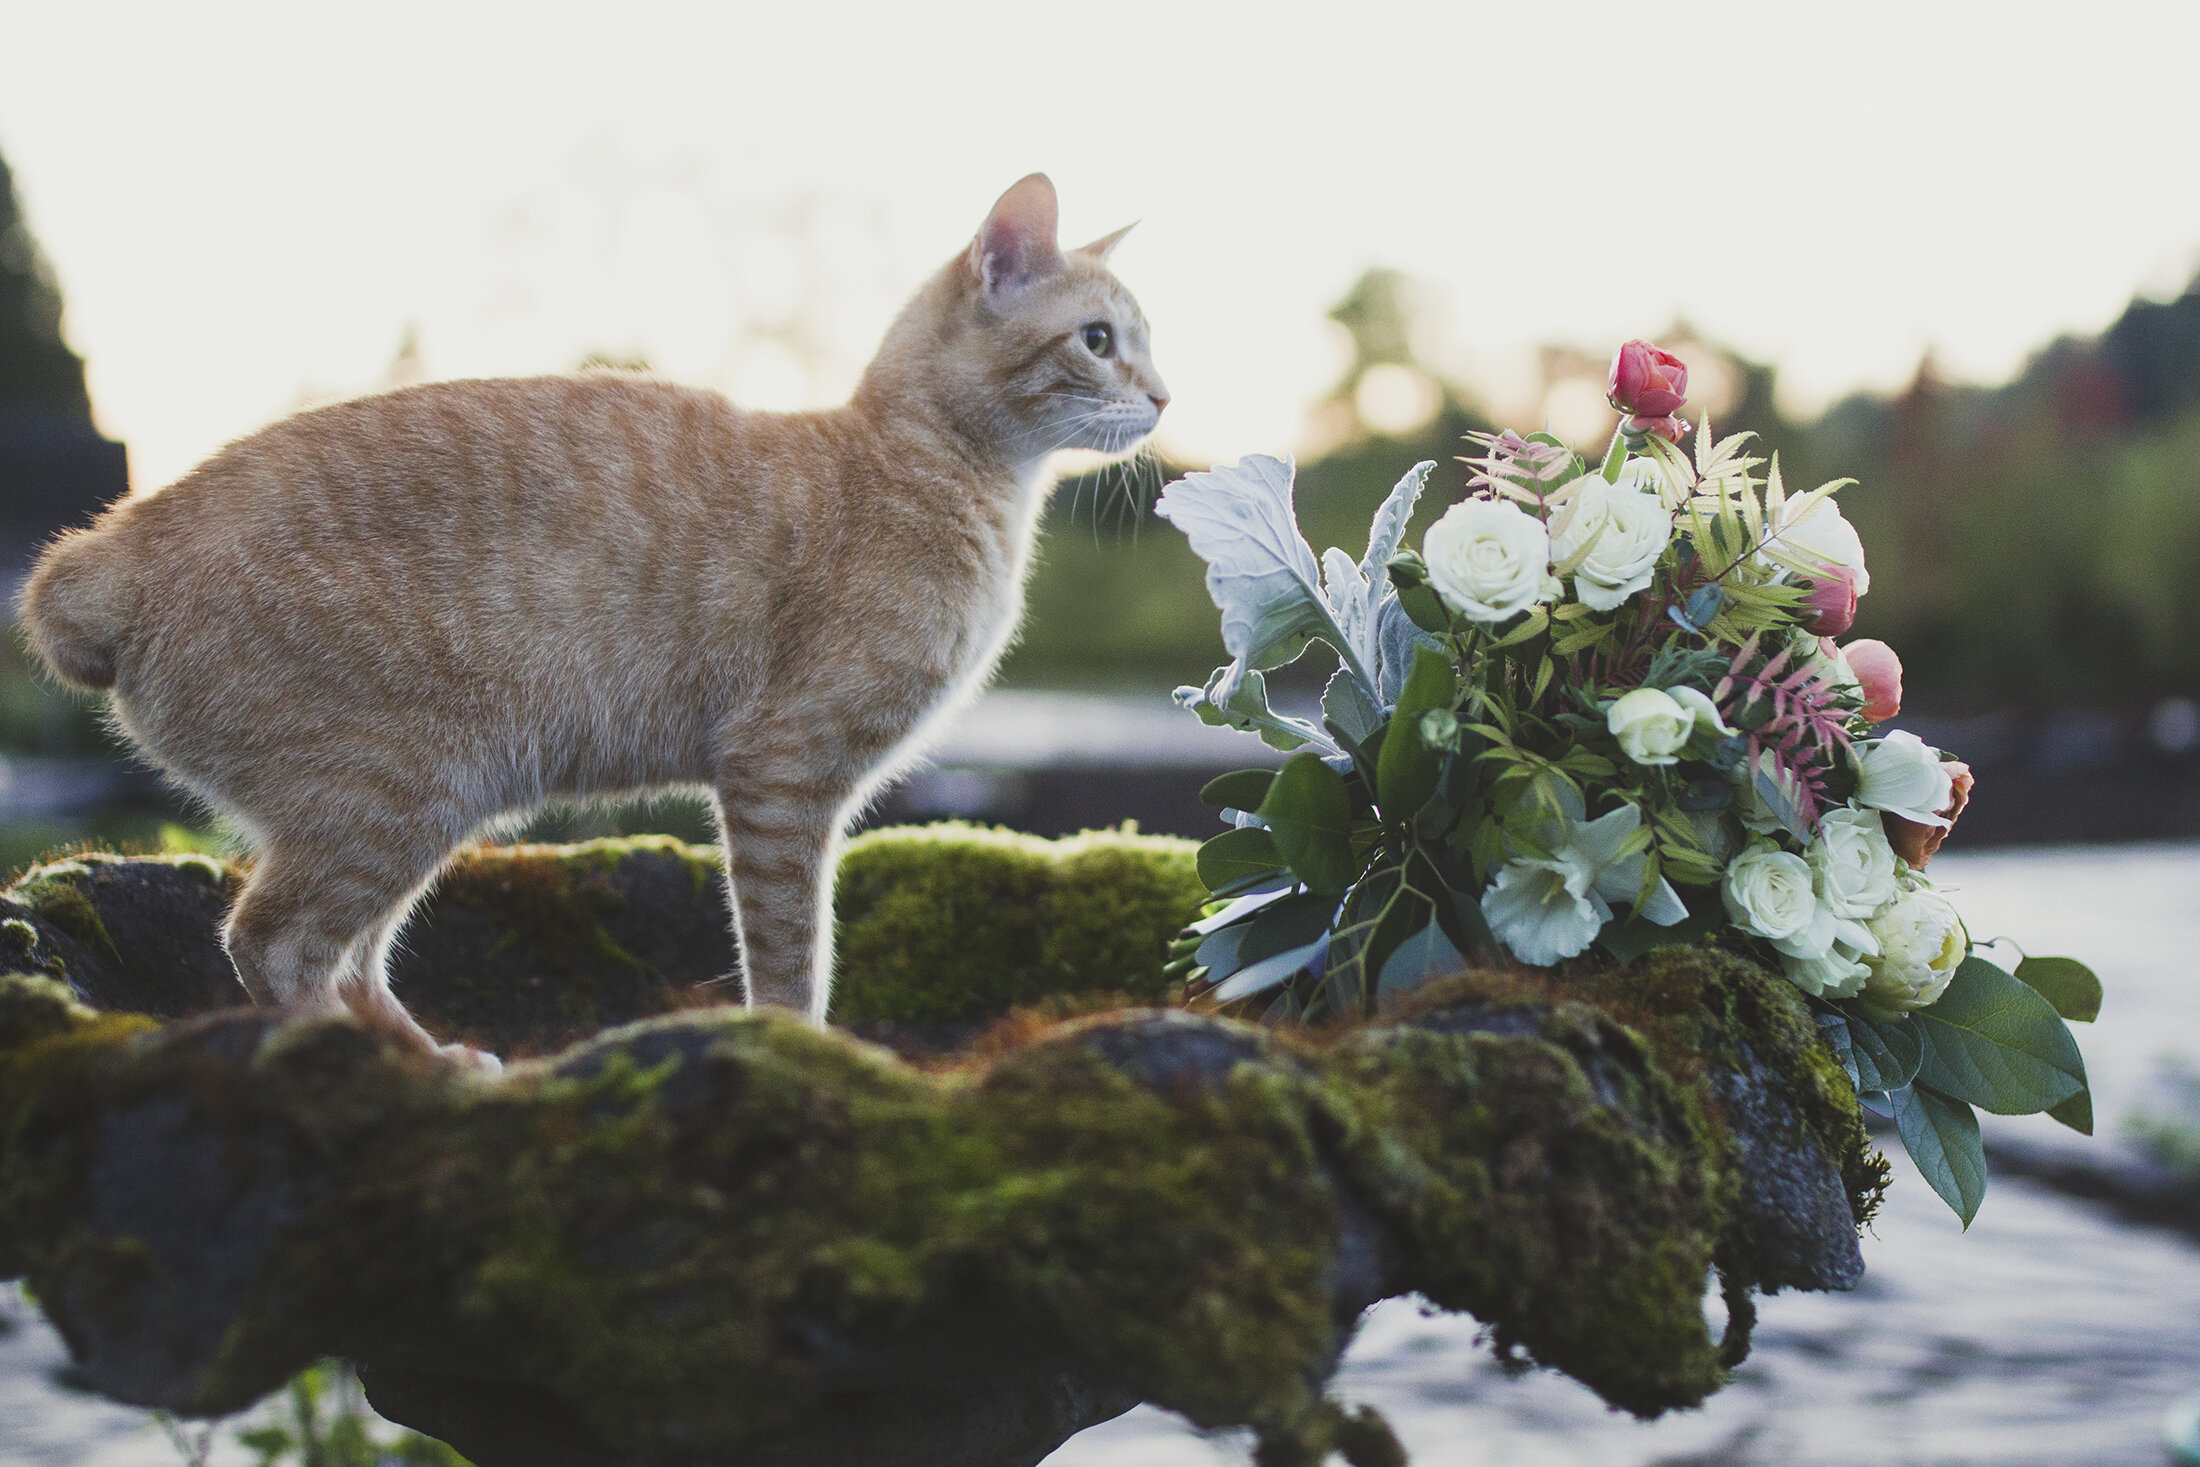 Sulley our cat with a bridal bouquet in the garden